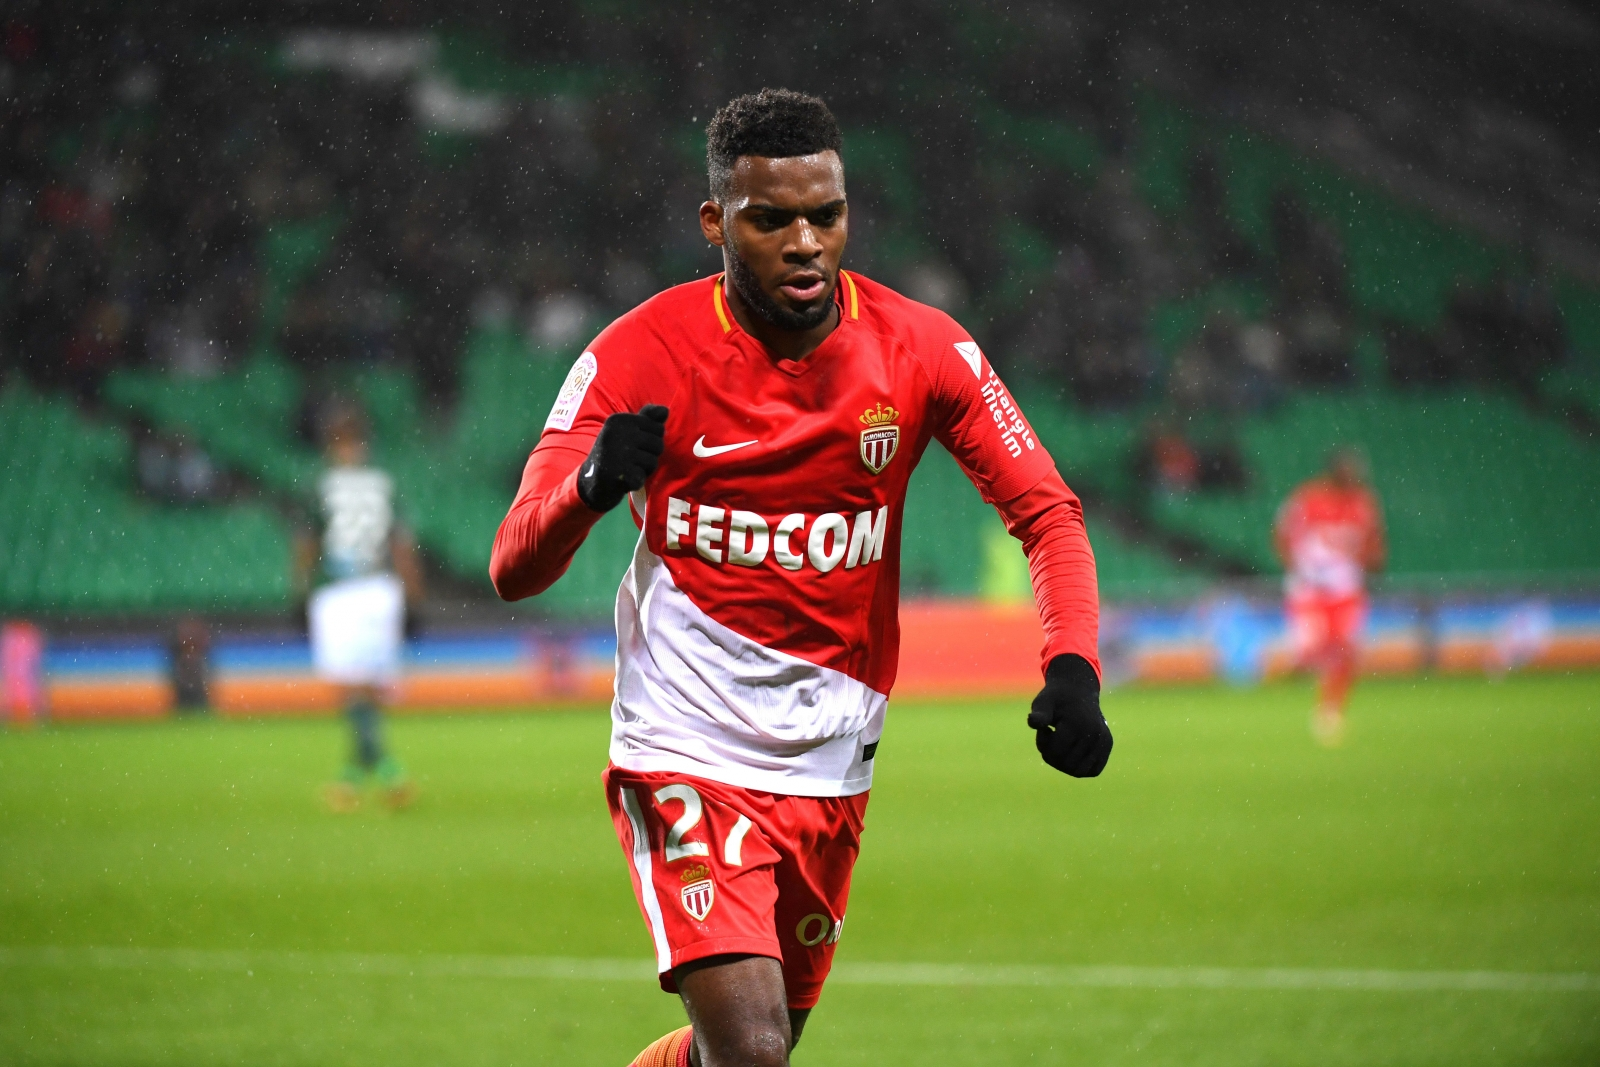 Leonardo Jardim gave an update on Thomas Lemar's situation last night